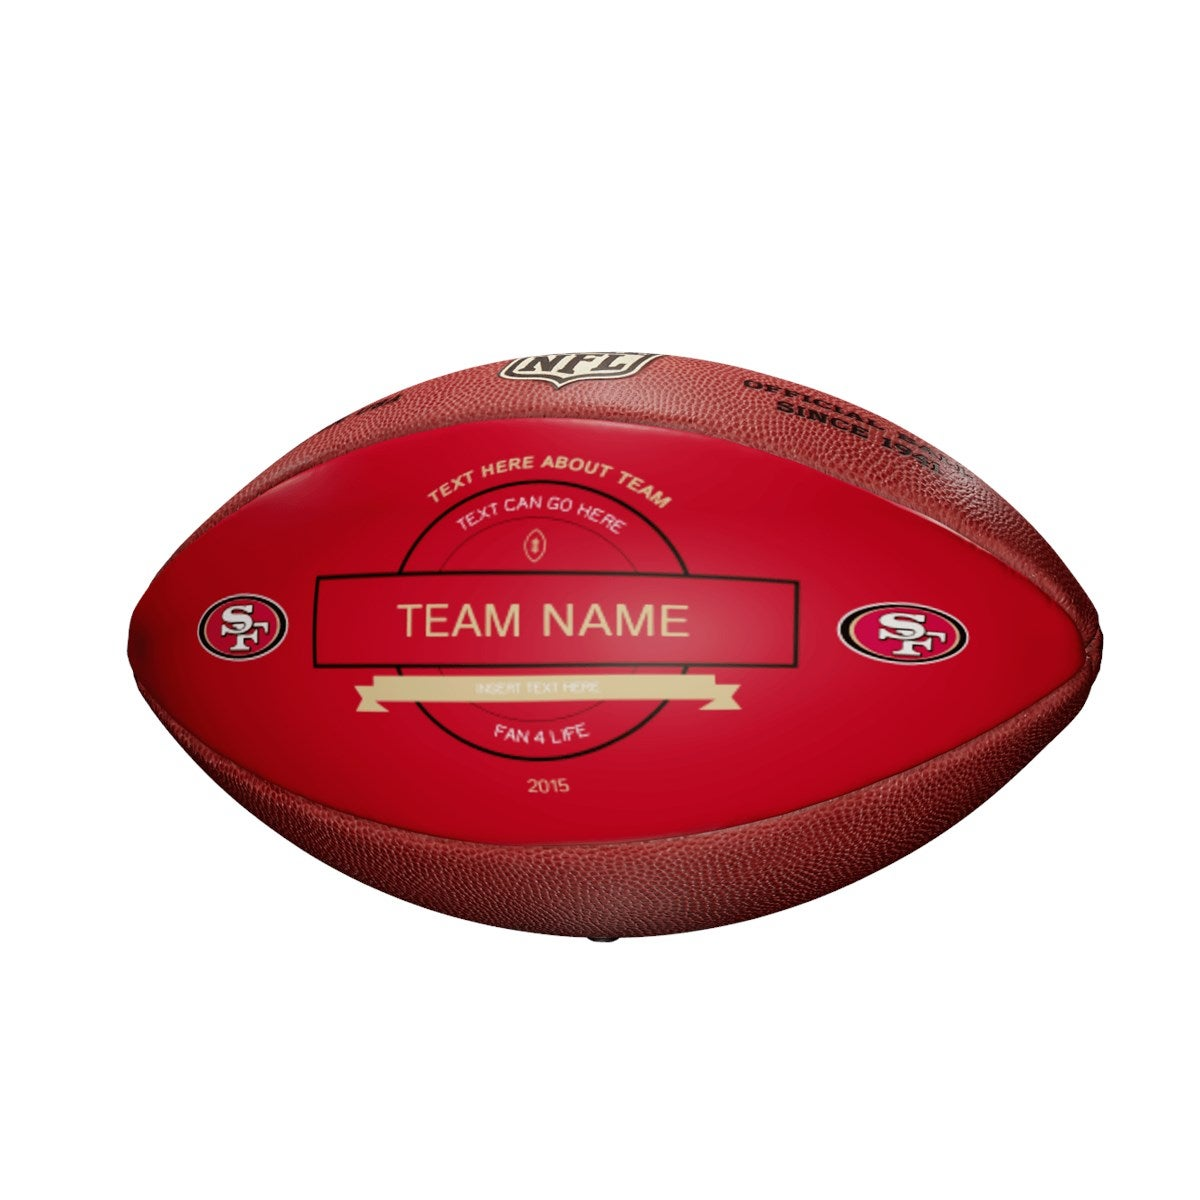 Personalized NFL San Francisco 49ers Ultimate Fan Football